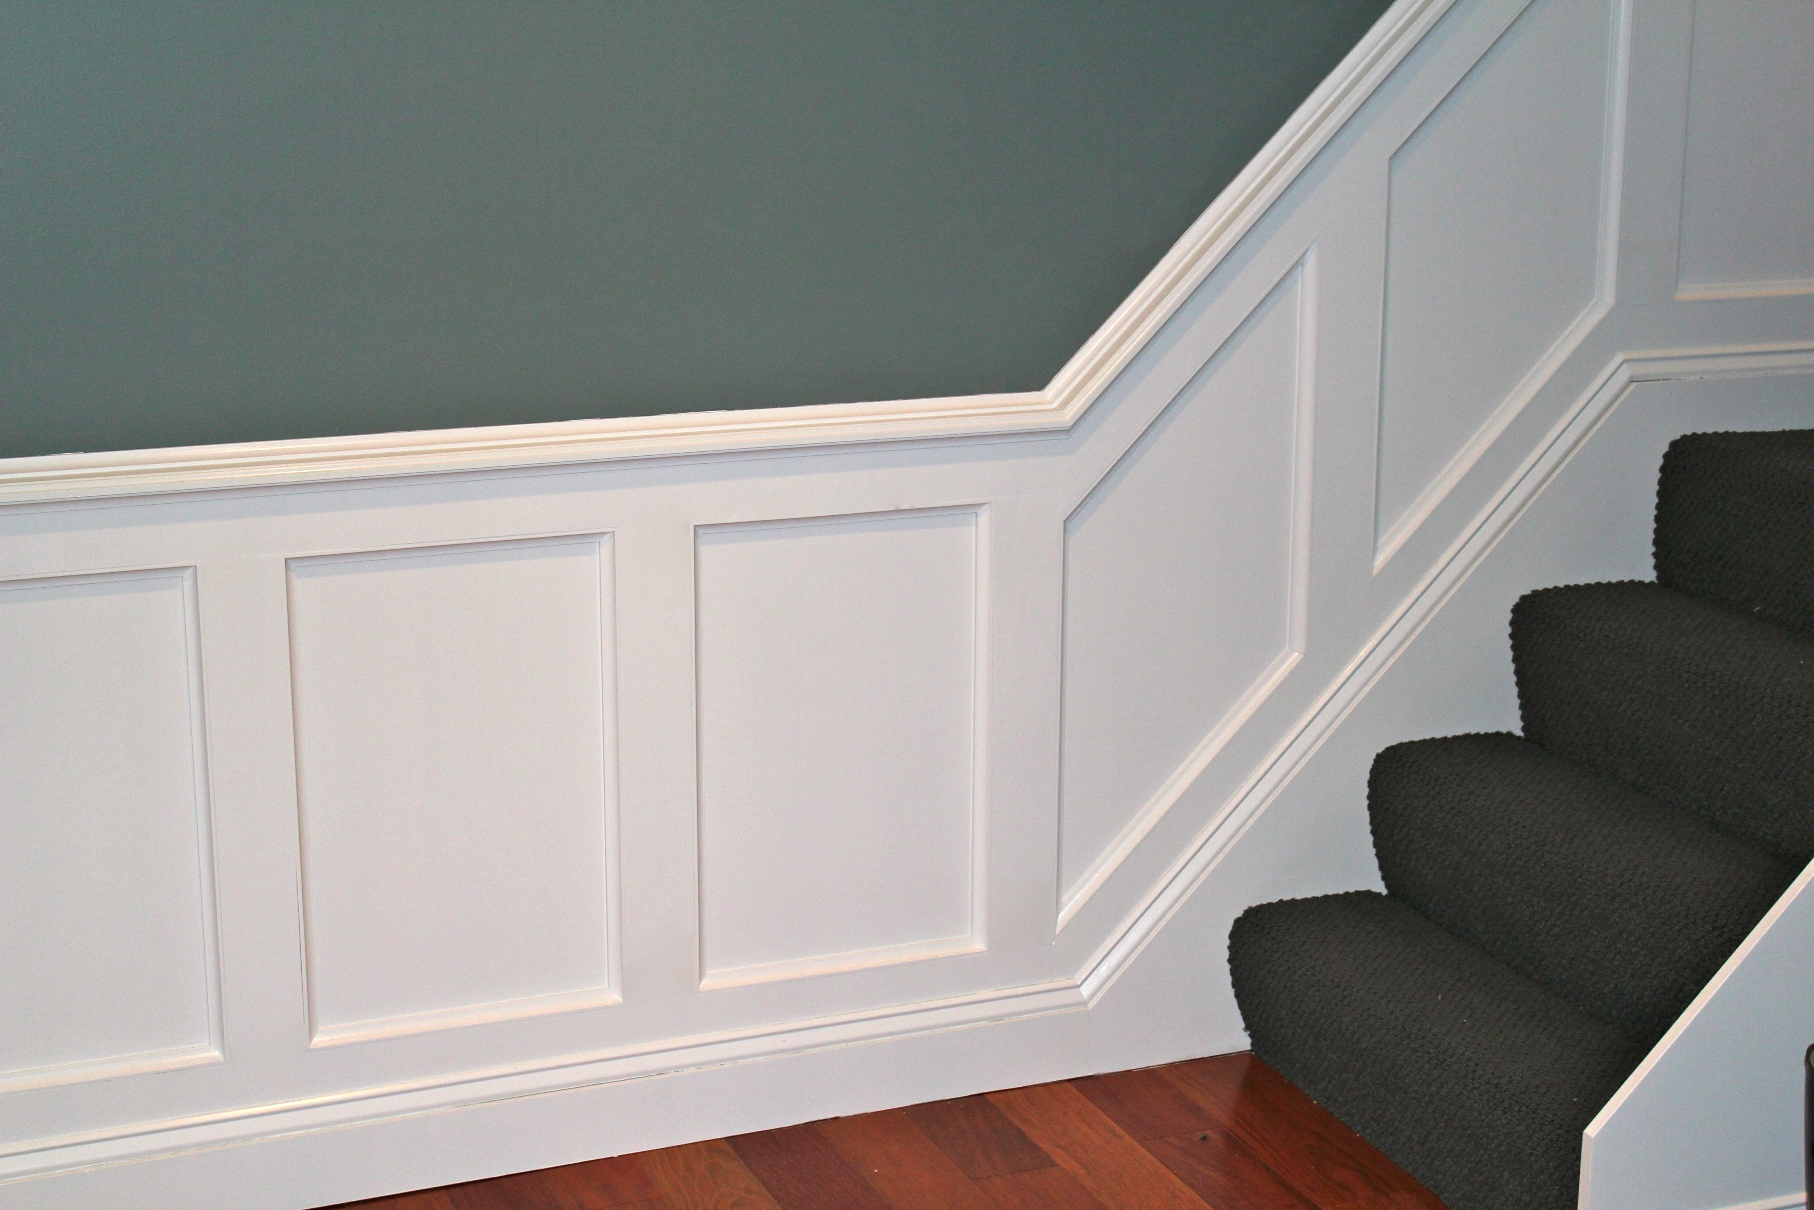 How to install wainscoting pro construction guide how to install wainscoting jeuxipadfo Images